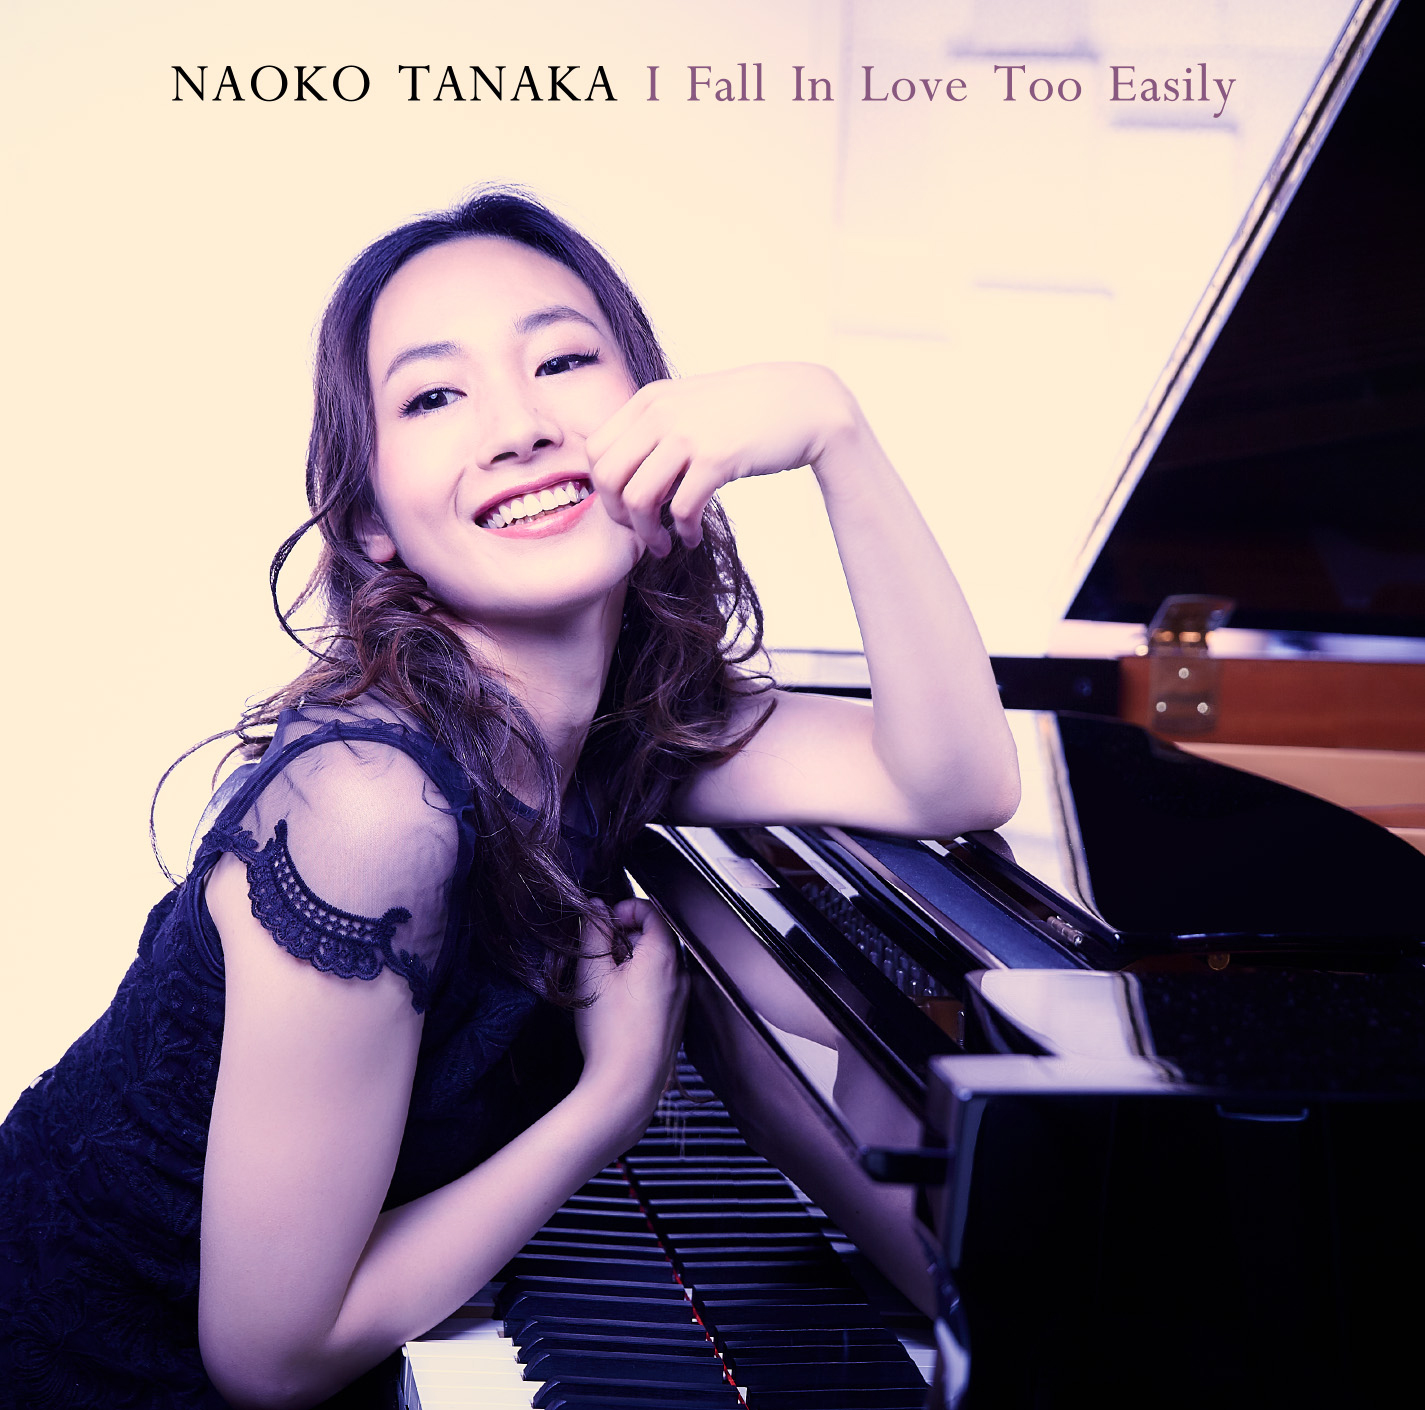 田中菜緒子 「I Fall In Love Too Easily」